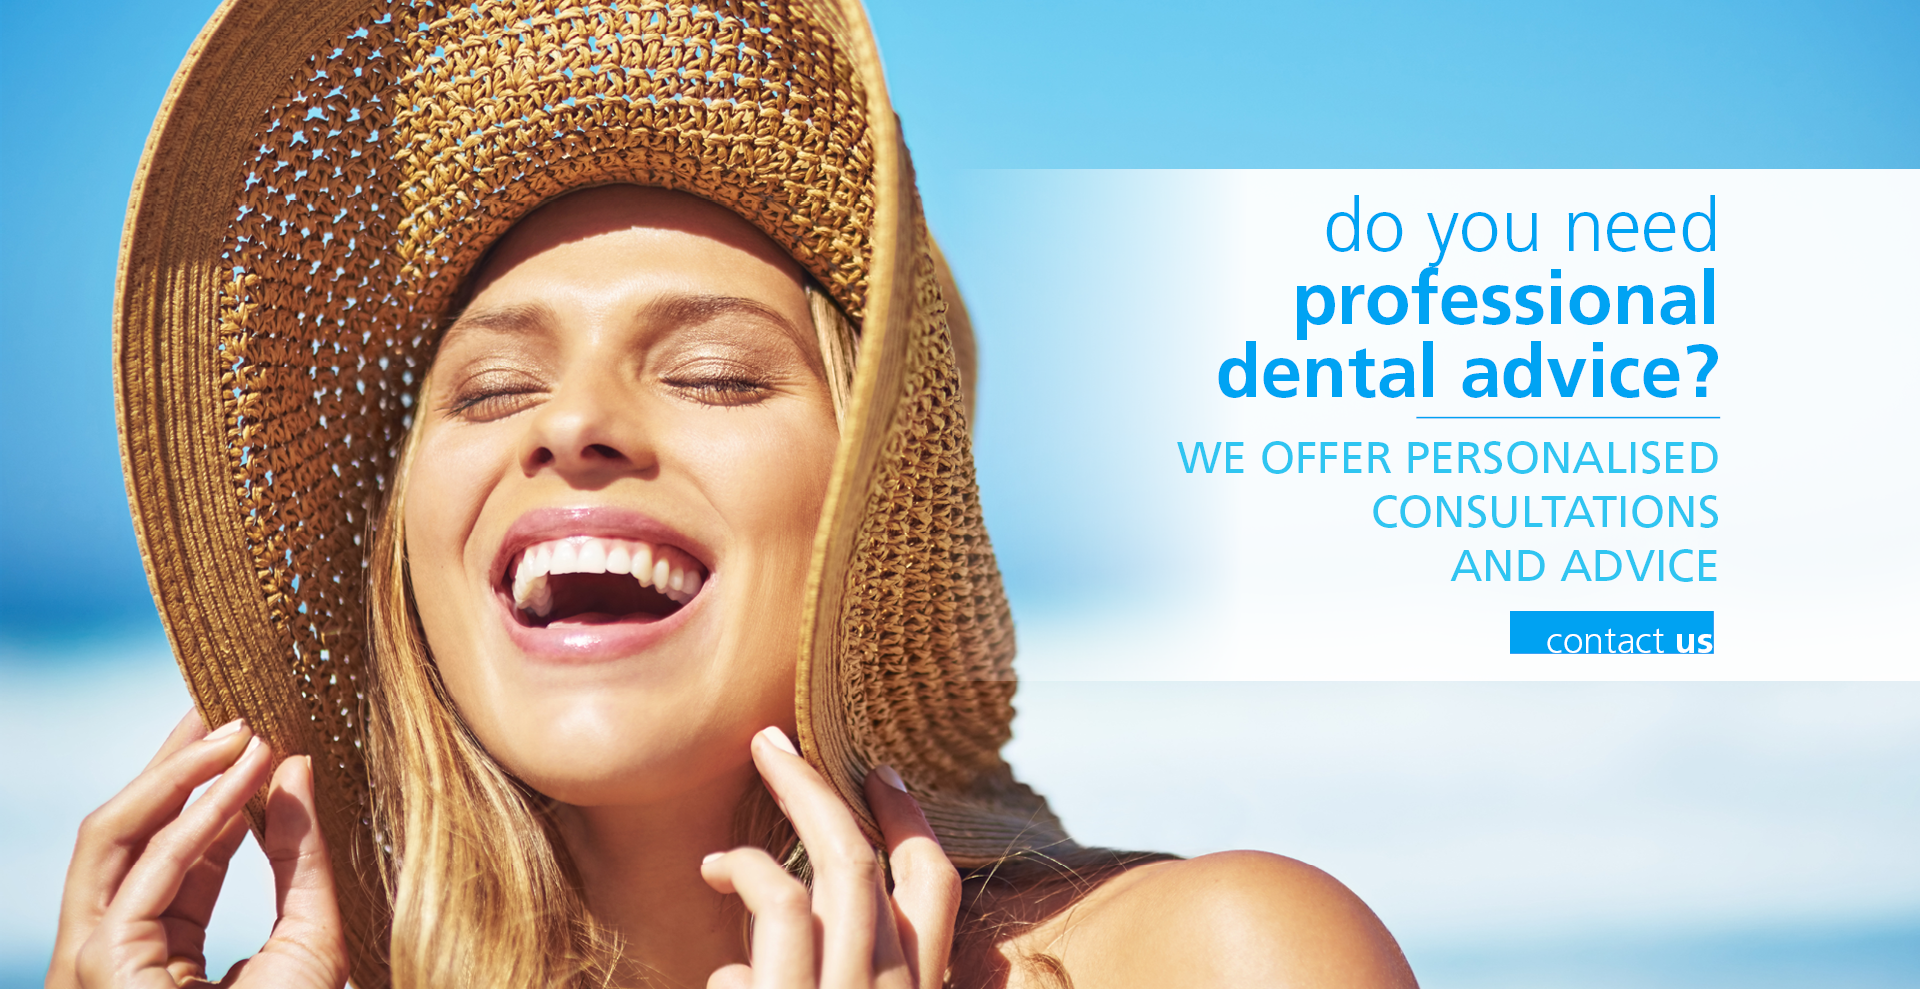 Do you need professional dental advice? We offer personalised consultations and advice. Contact us.